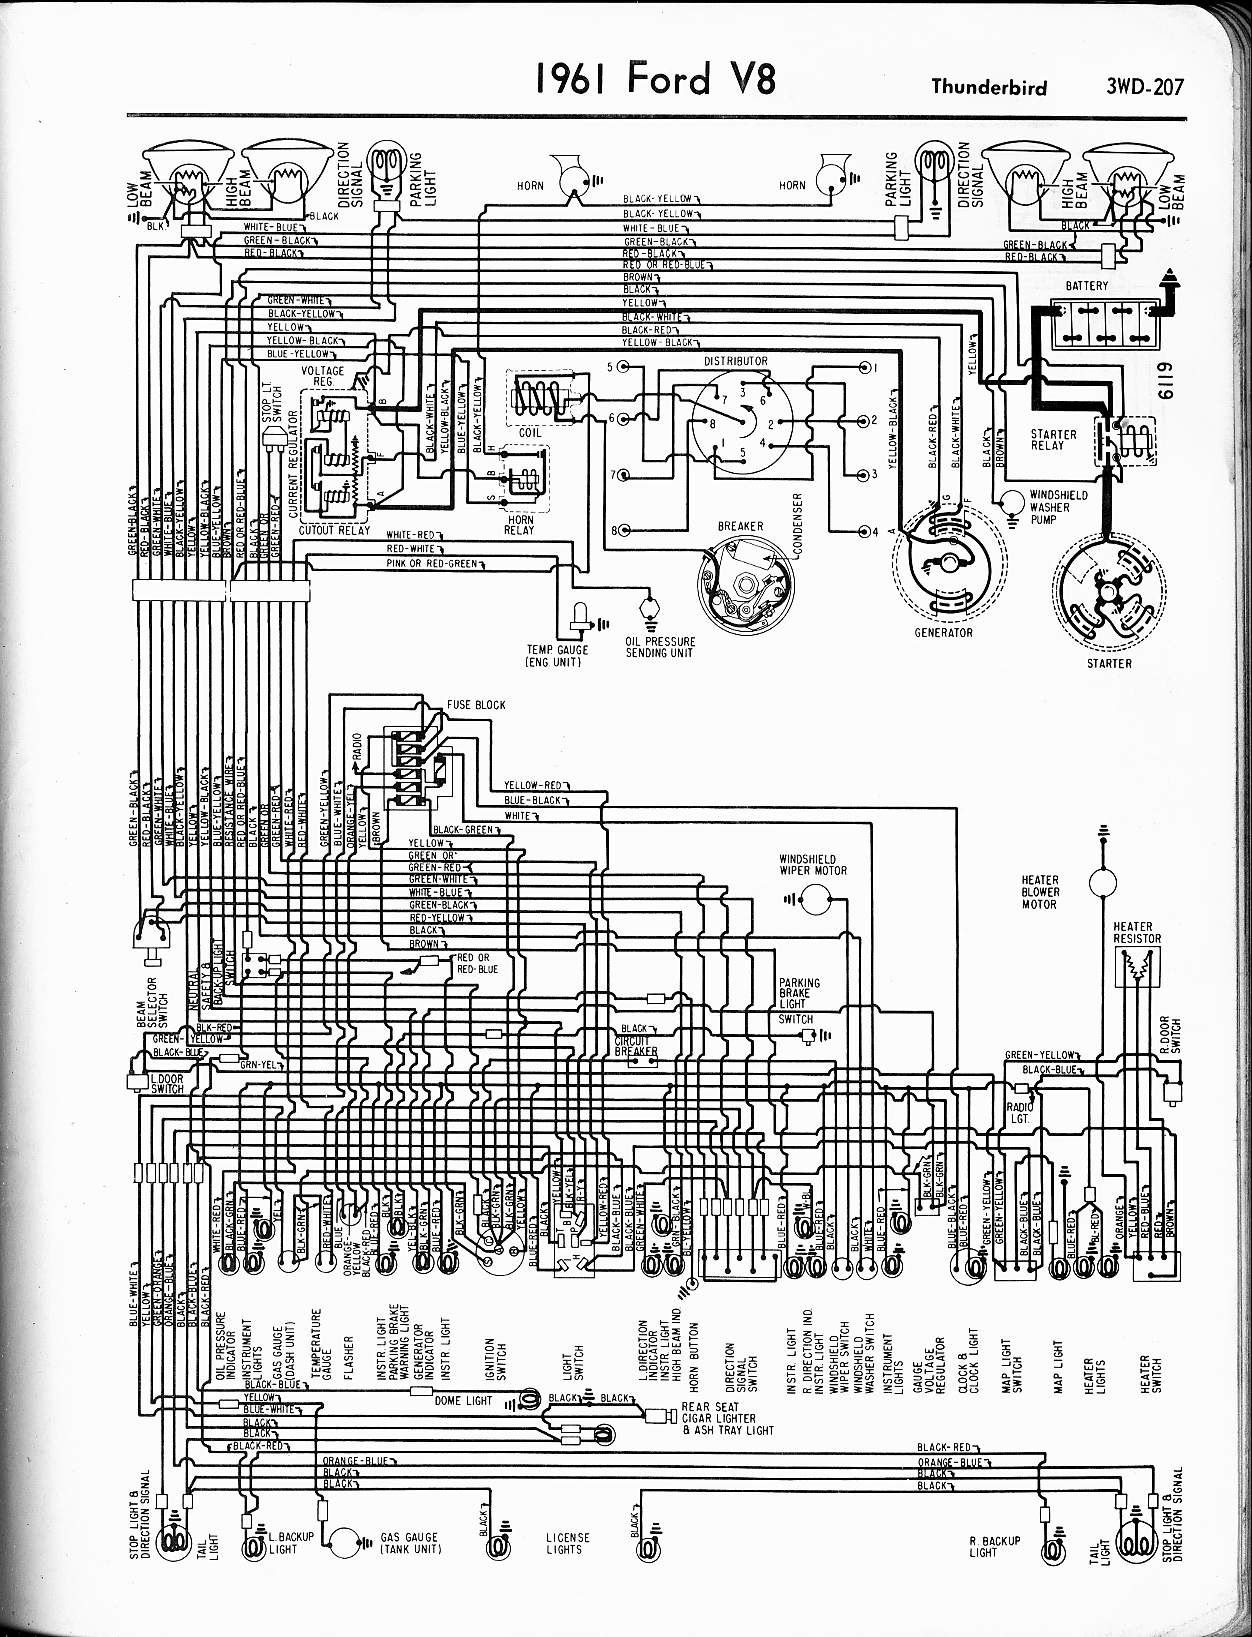 57 65 ford wiring diagrams 1970 road runner wiring diagram 1970 thunderbird instrument cluster diagram wiring schematic #11